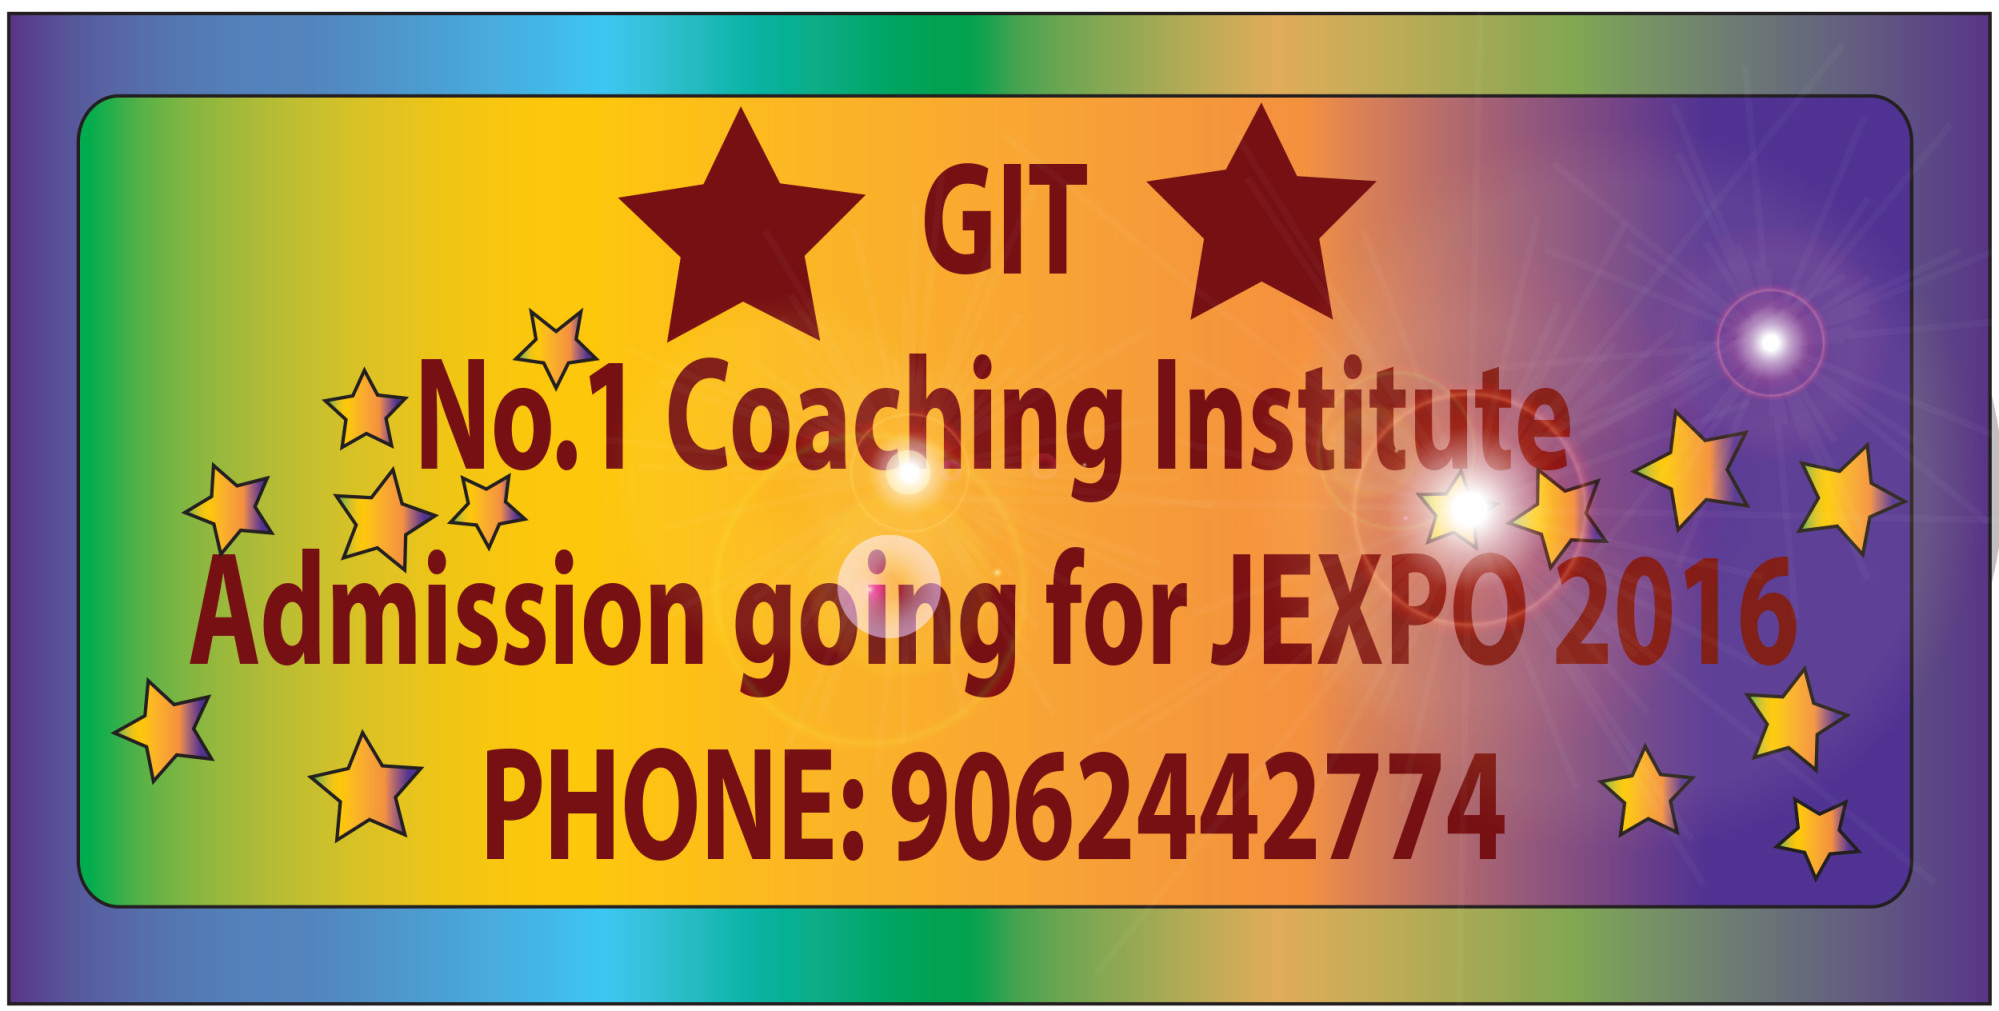 cropped-jexpo-coach-2015.jpg